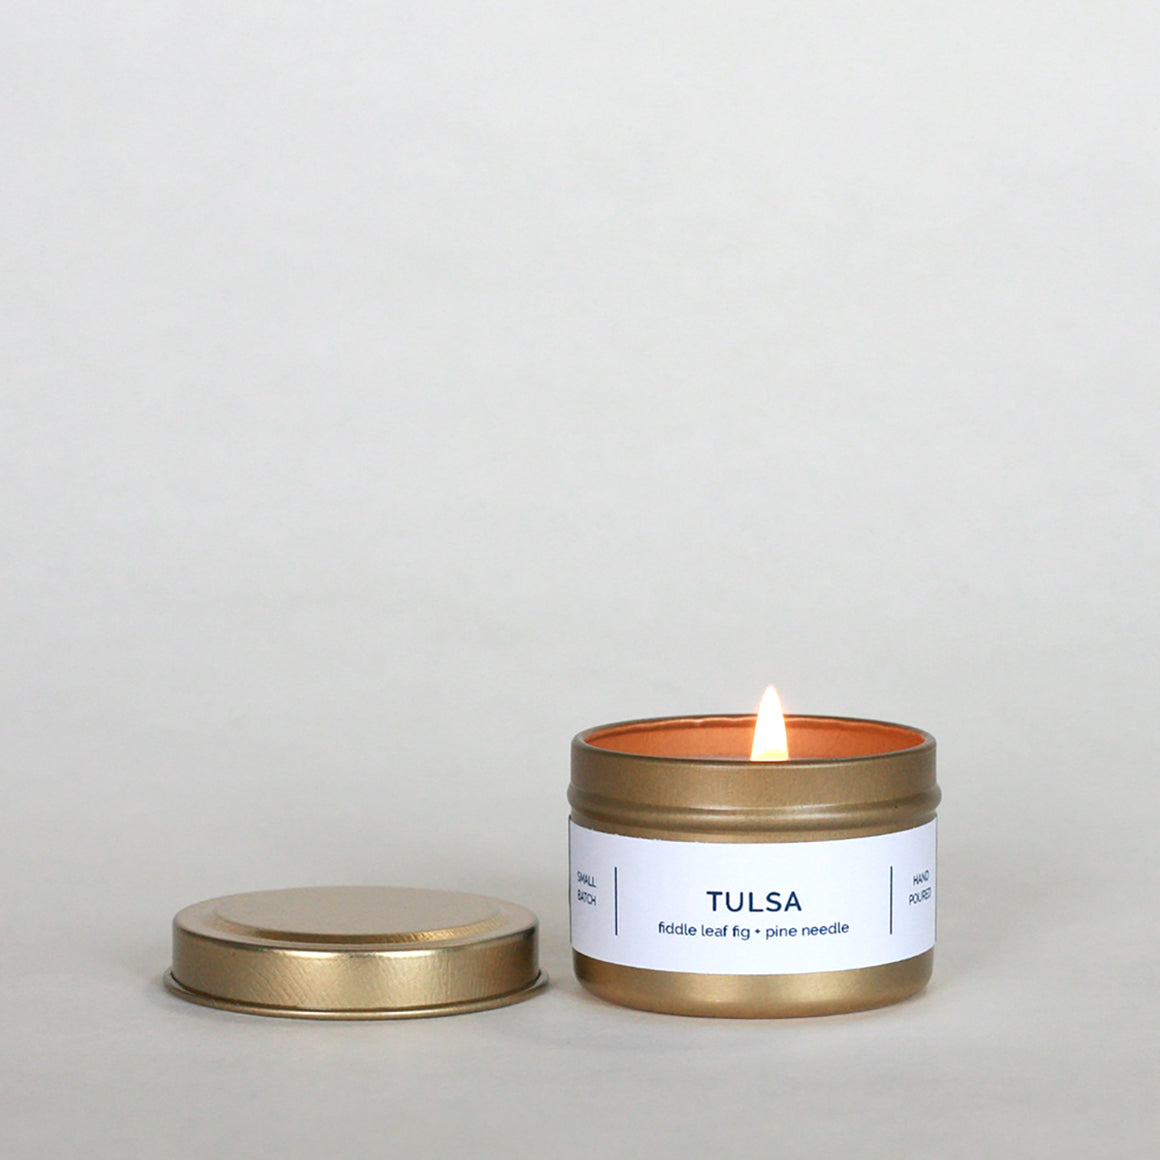 TULSA 4 oz Travel Tin Soy Candle